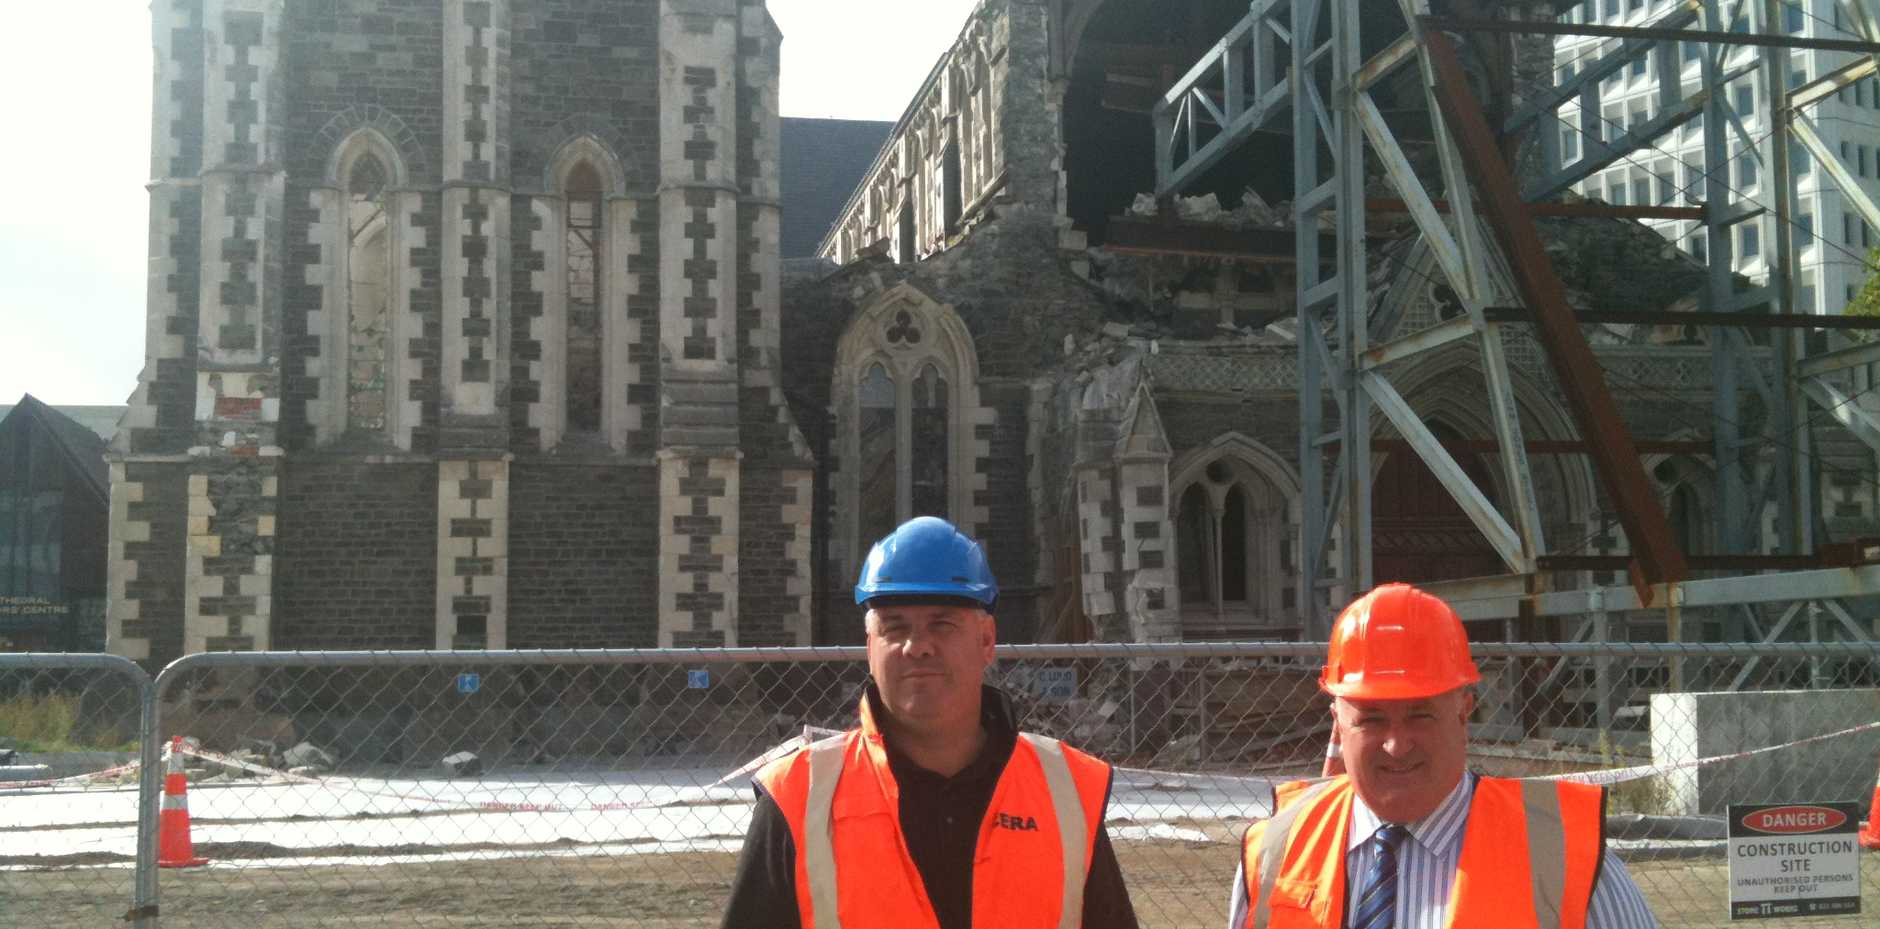 BURIED TREASURE. LVRC Mayor Steve Jones was escorted on a tour of Christchurch's 'red zone' by Caterbury Earthquake Recovery Authority general manager of operations Warwick Isaacs and viewed the iconic Christchurch Cathedral, a New Zealand national treasure, which is being torn down after the earthquakes.